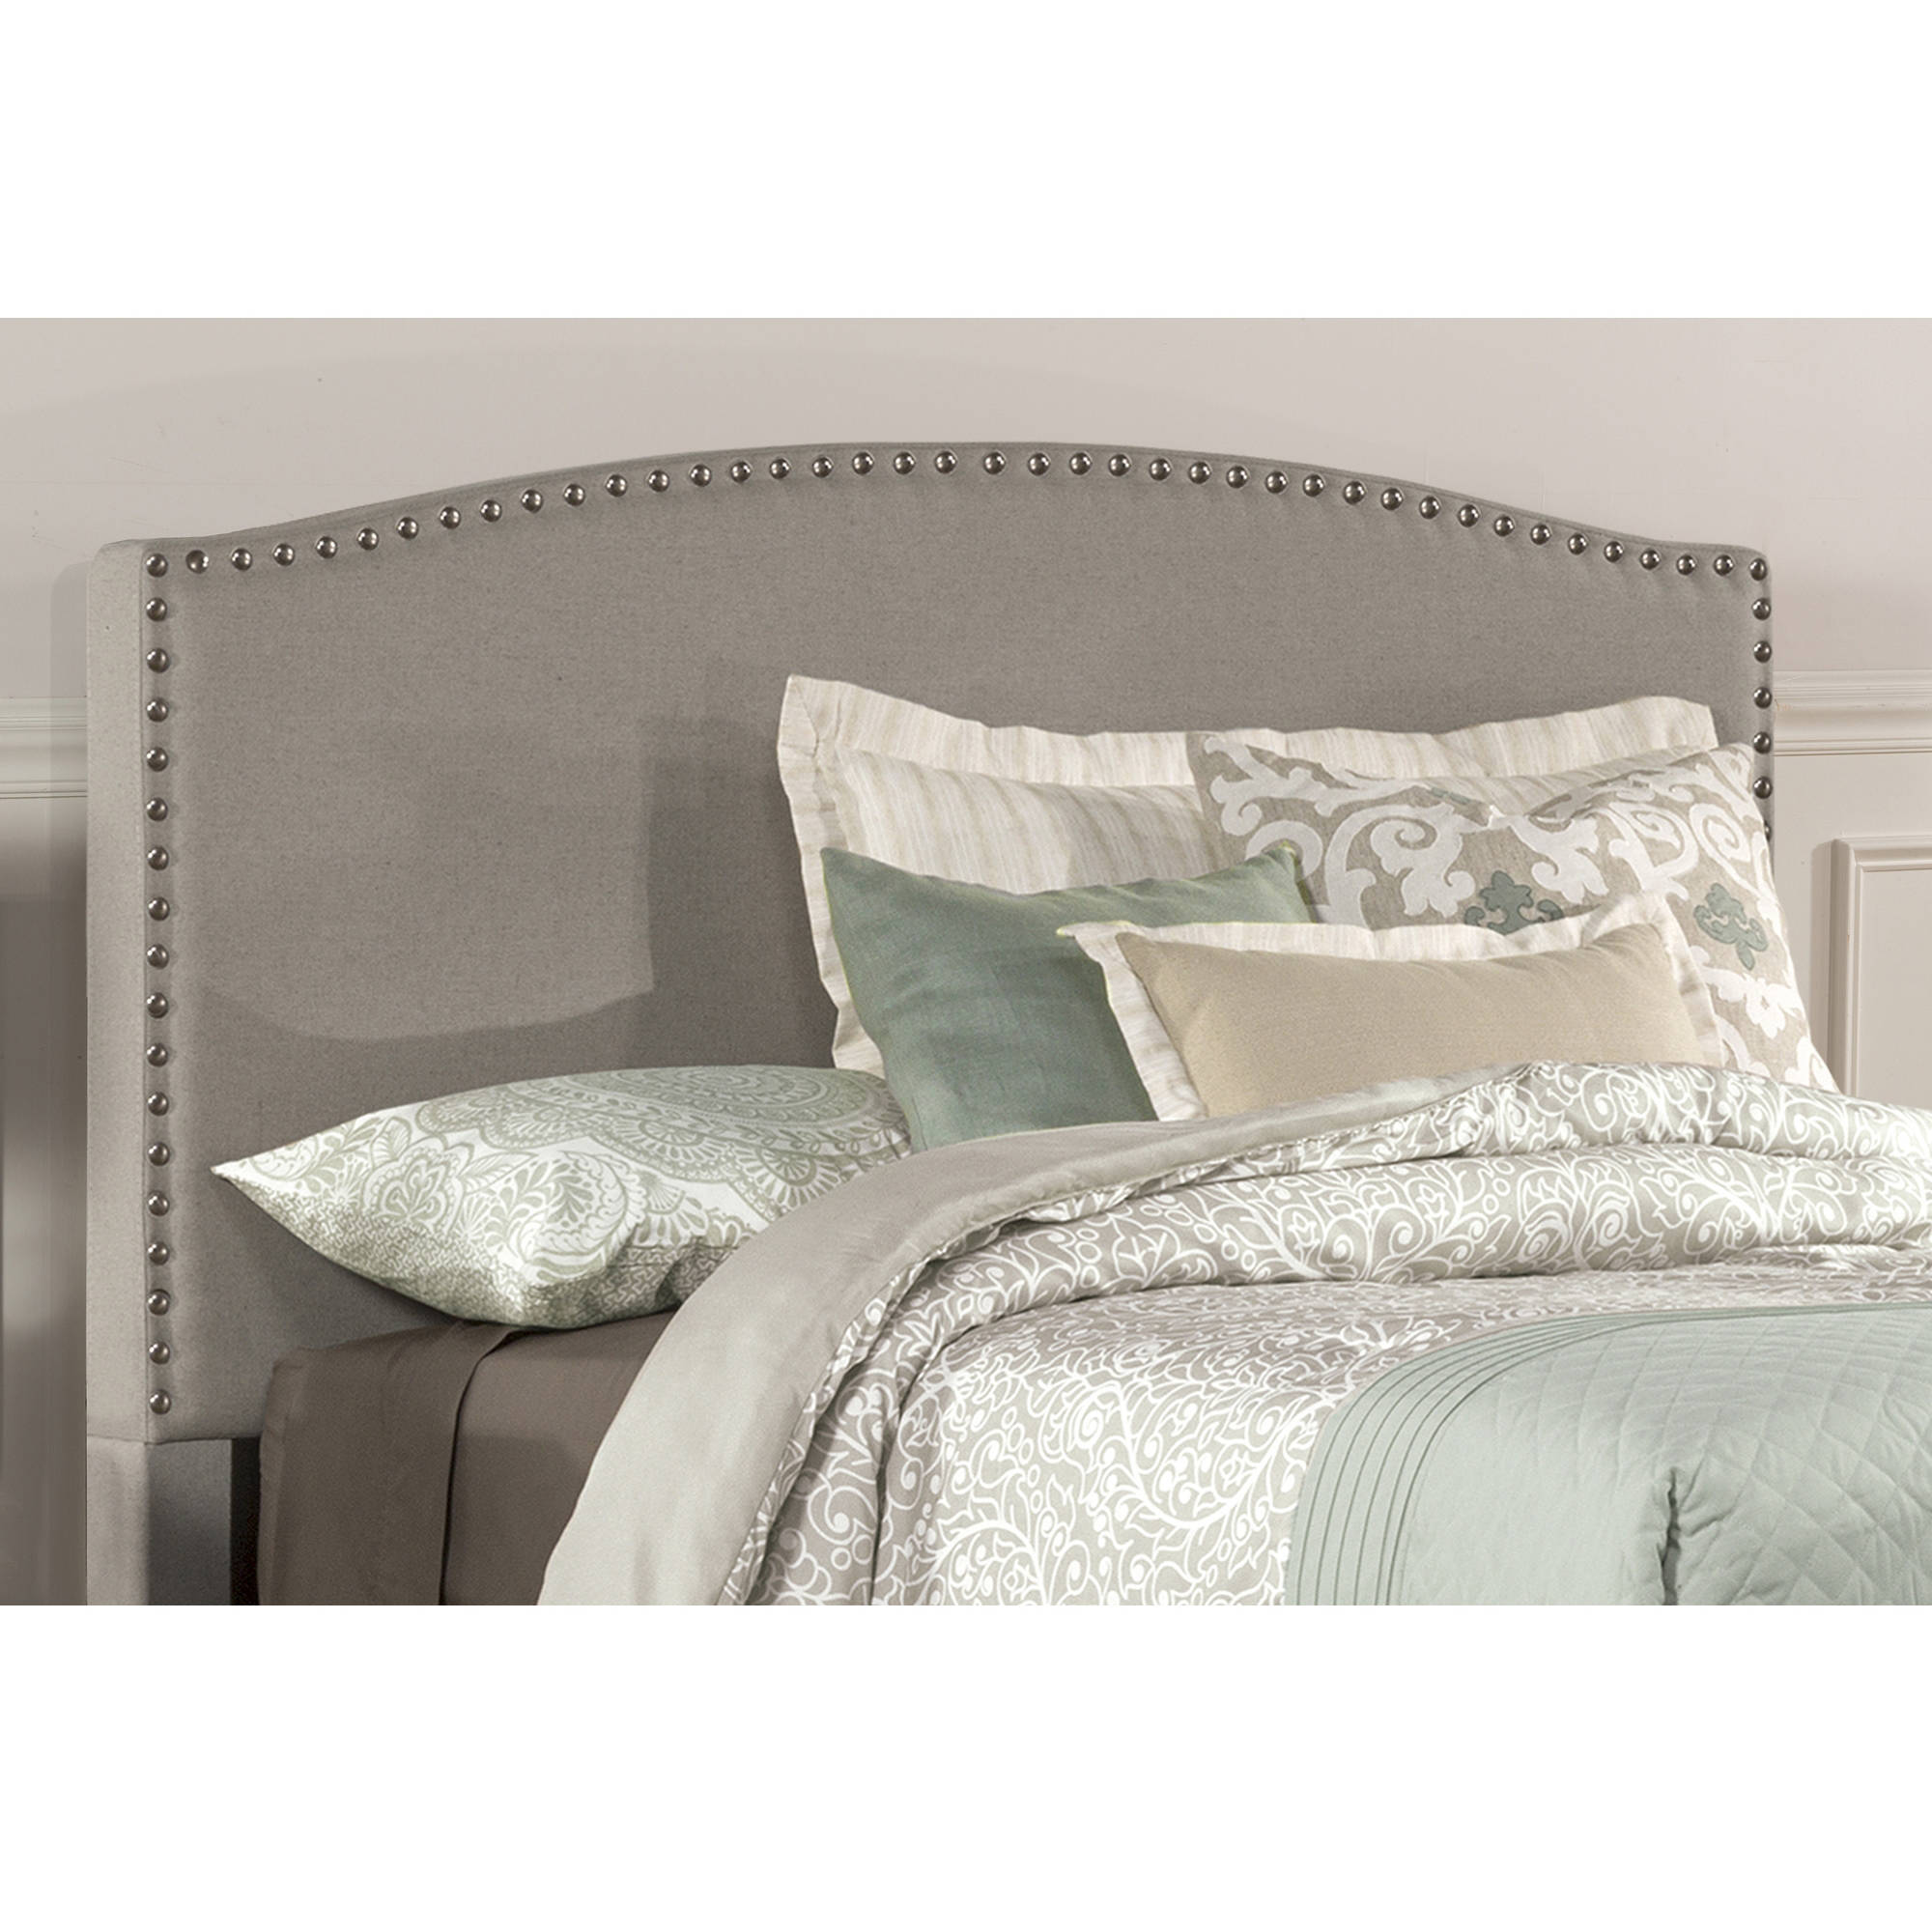 Kerstein Full Bed, Dove Gray (Box 1 of 3)